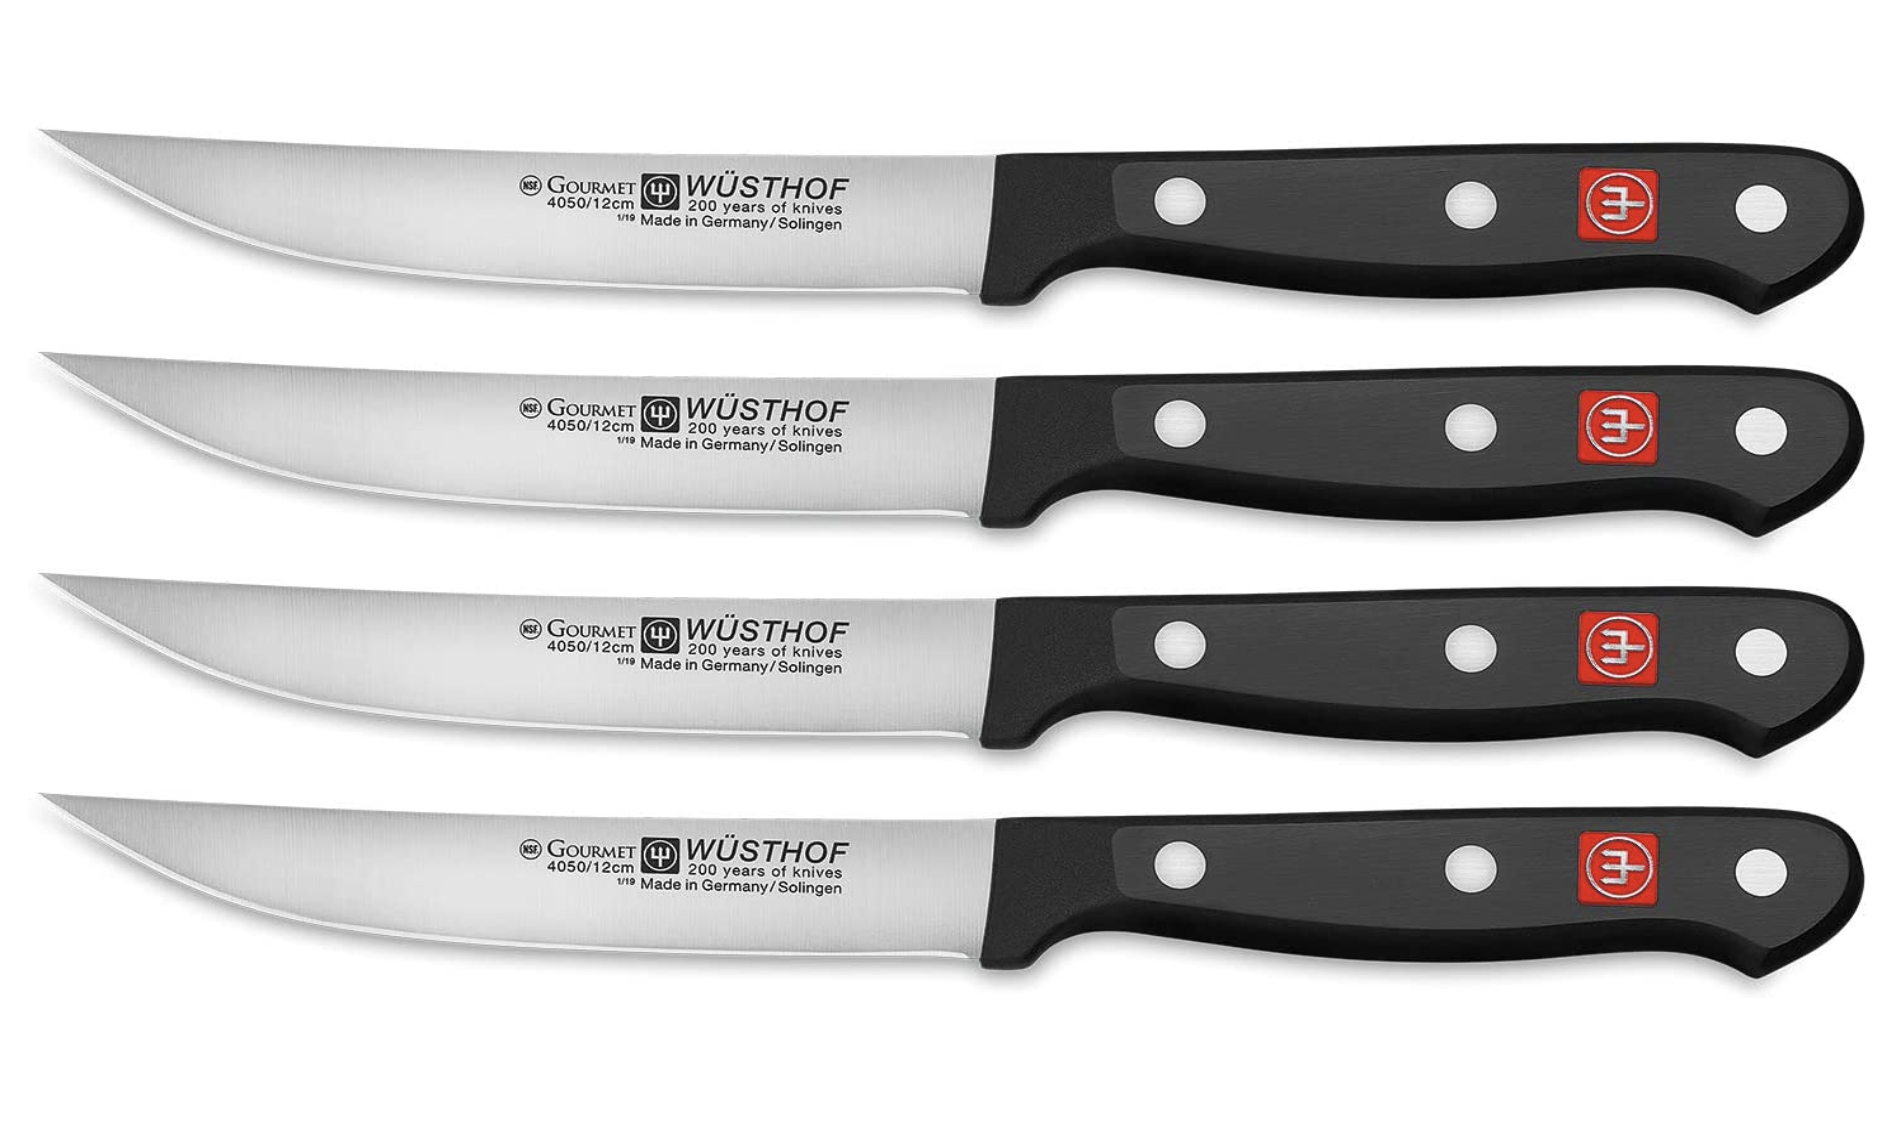 Wusthof Gourmet Four 4-Piece German Precise Laser Cut High Carbon Stainless Steel Kitchen Steak Knife Set - Model 9729